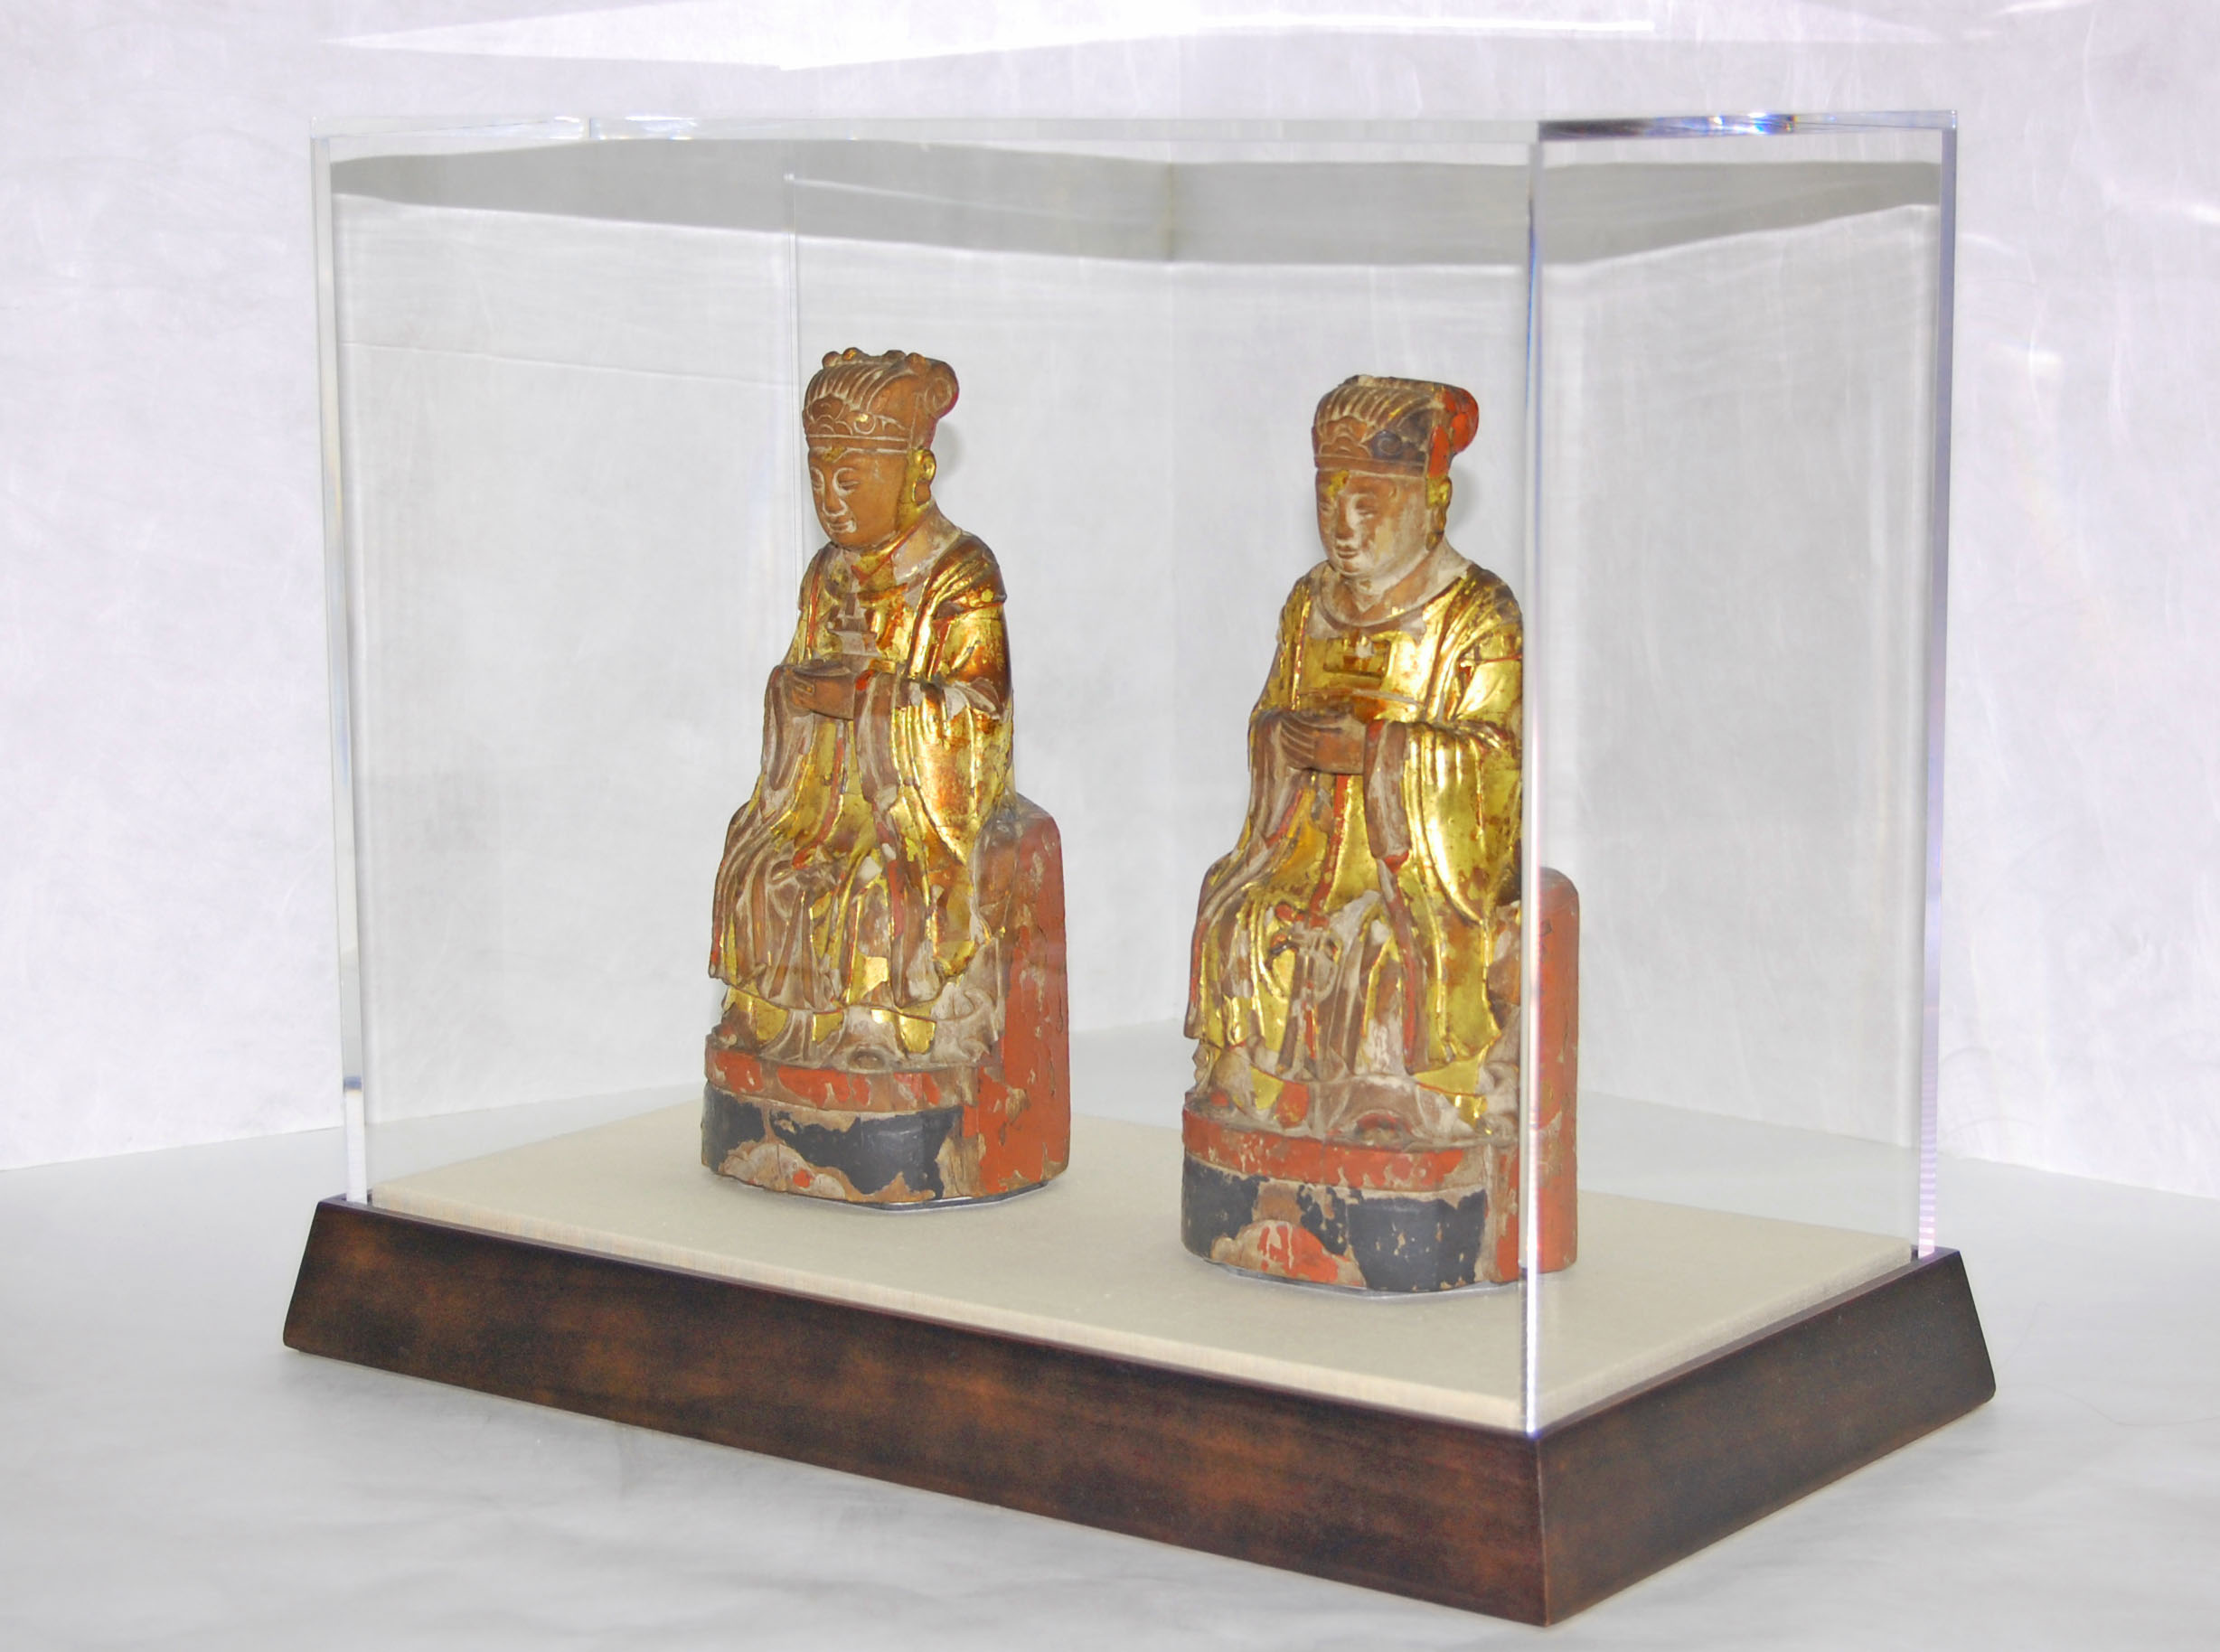 Display case for Asian sculptures